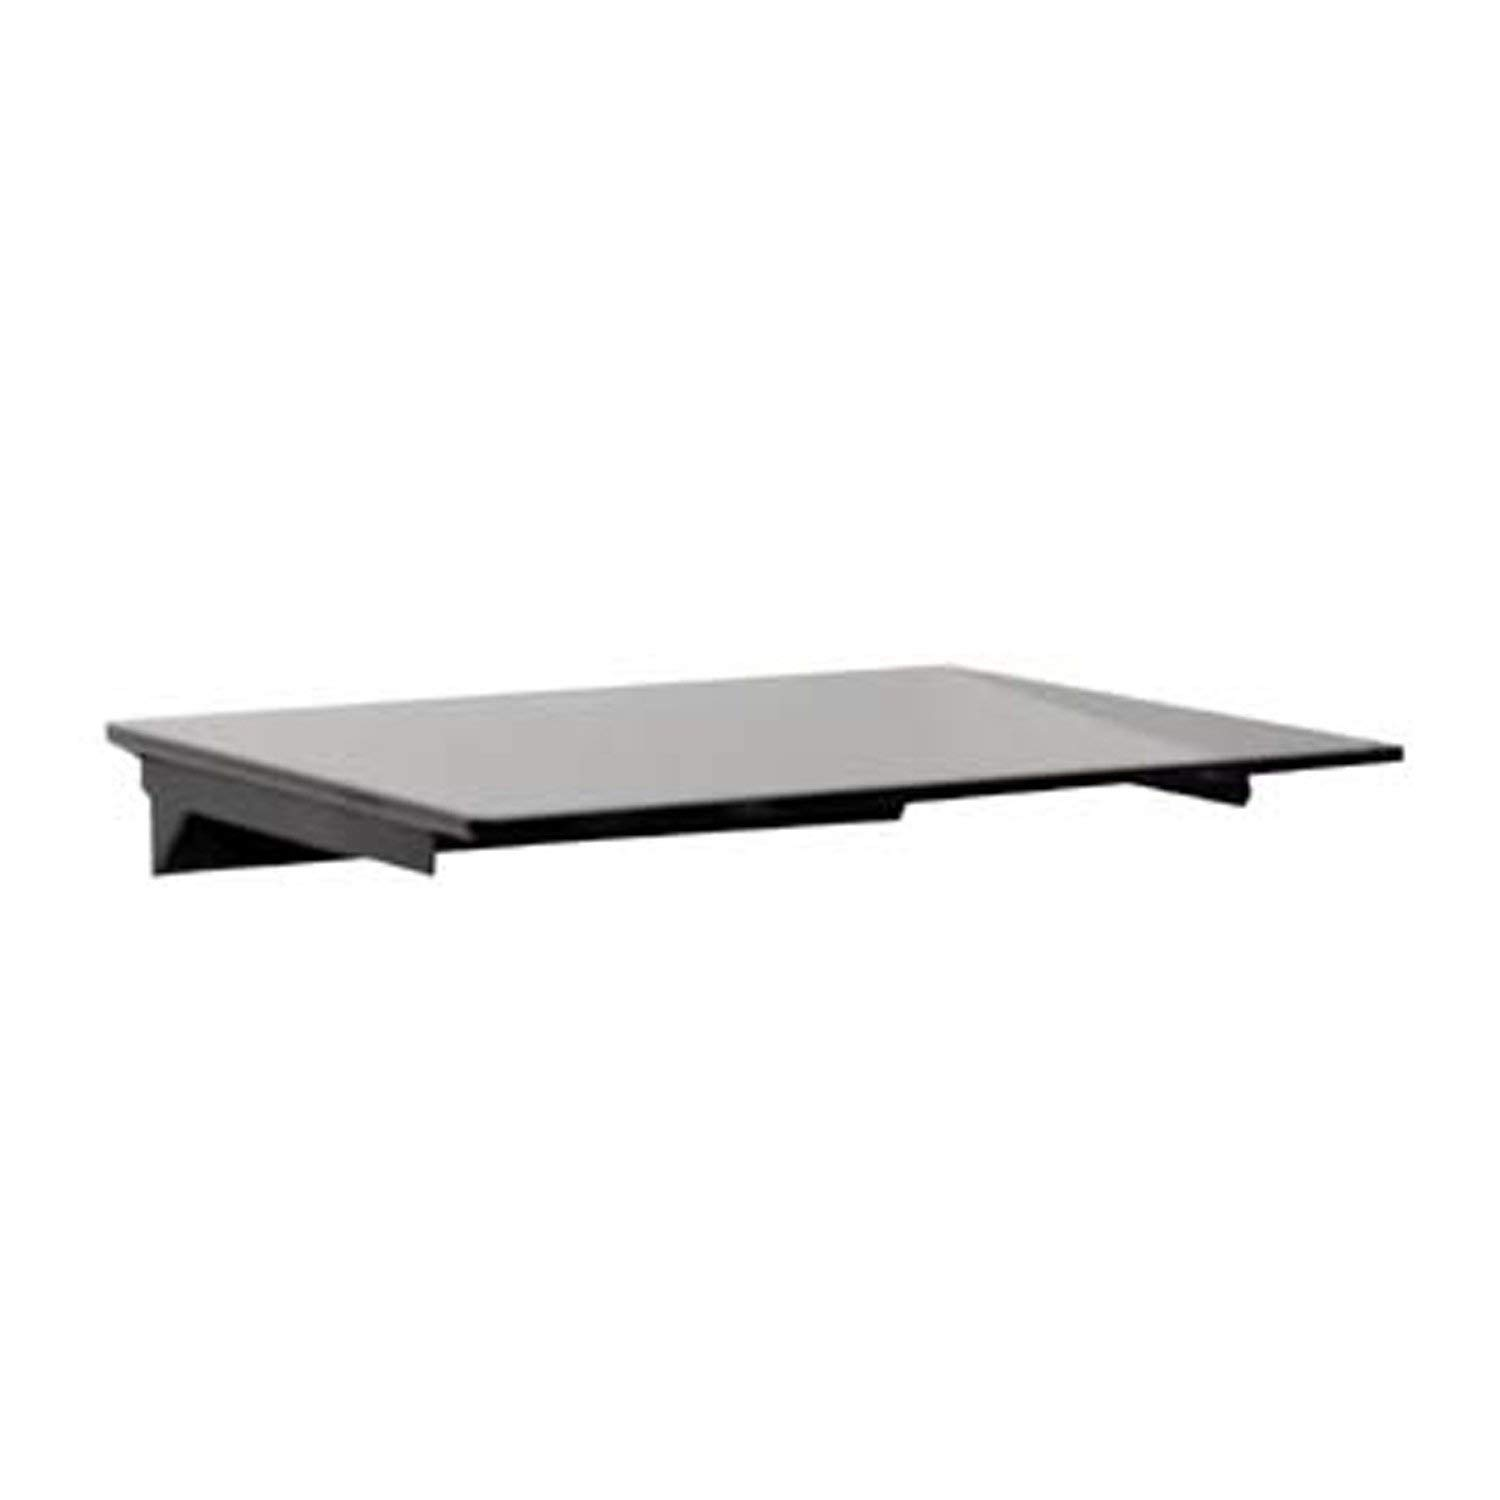 master mounts floating glass shelf for home shelves electronics electronic components mount wall use display cable box dvr blu ray dvd player corner perth matching desk and